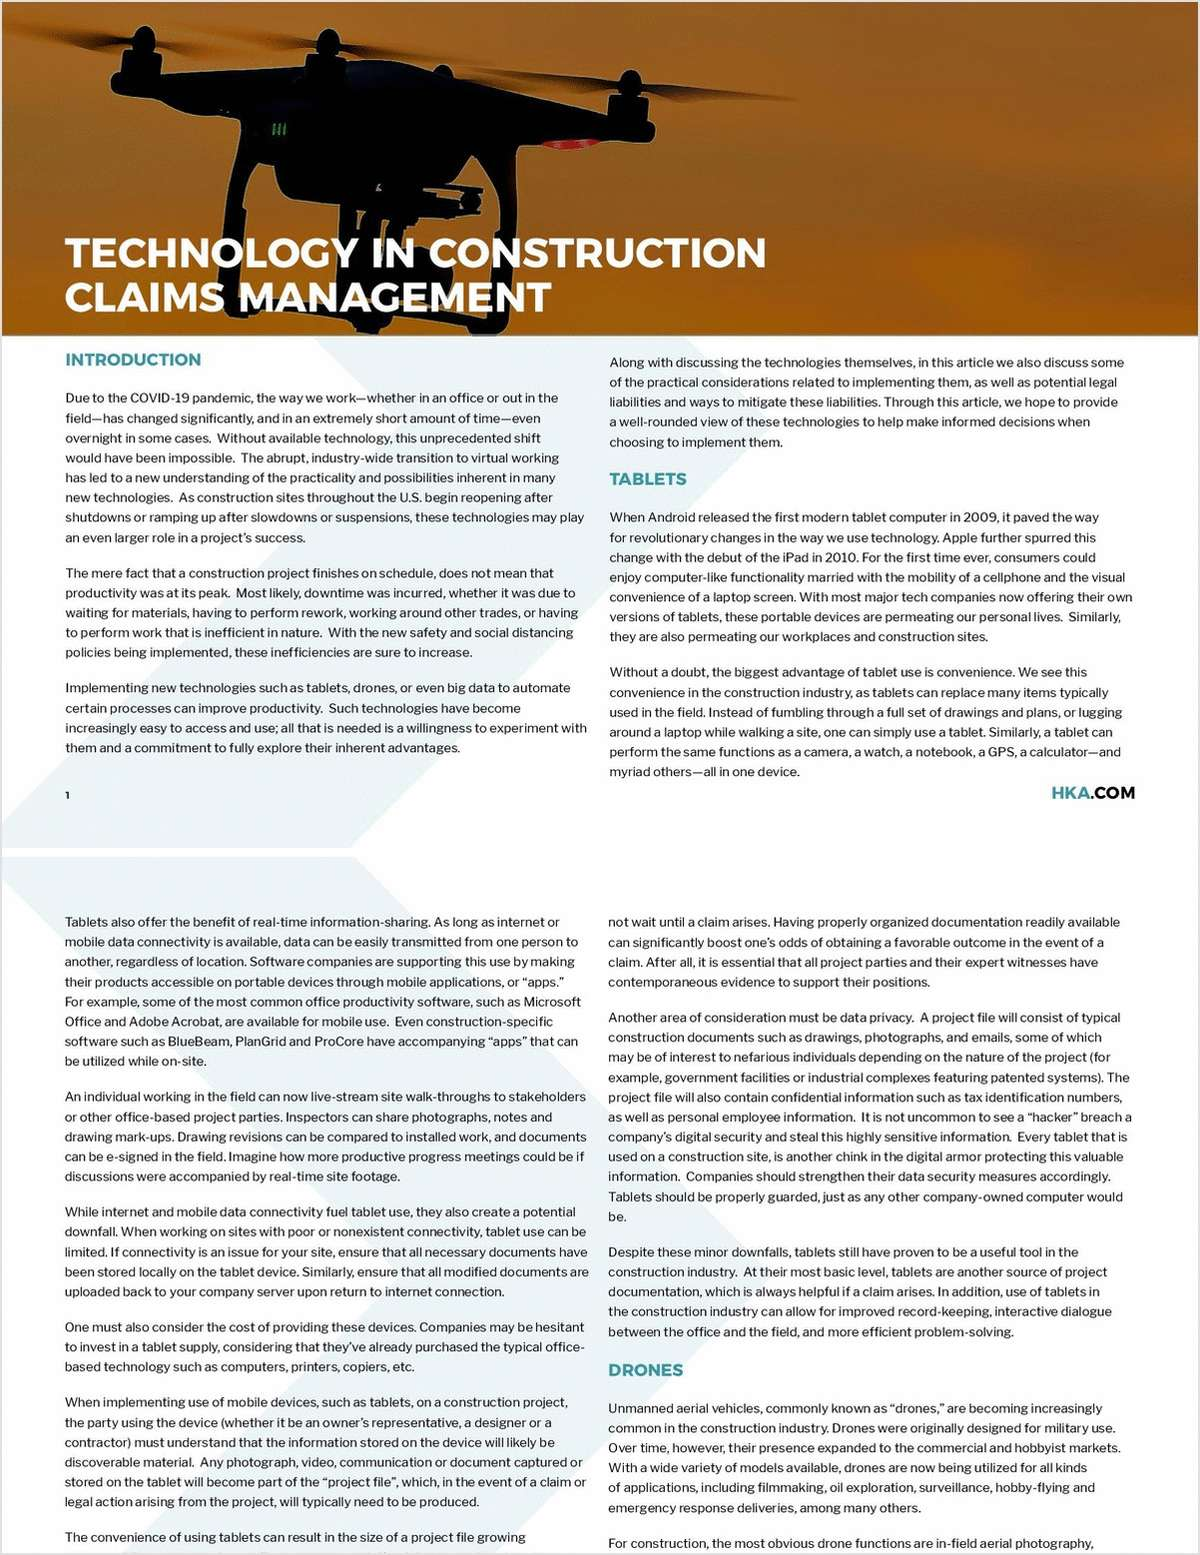 Technology in Construction Claims Management